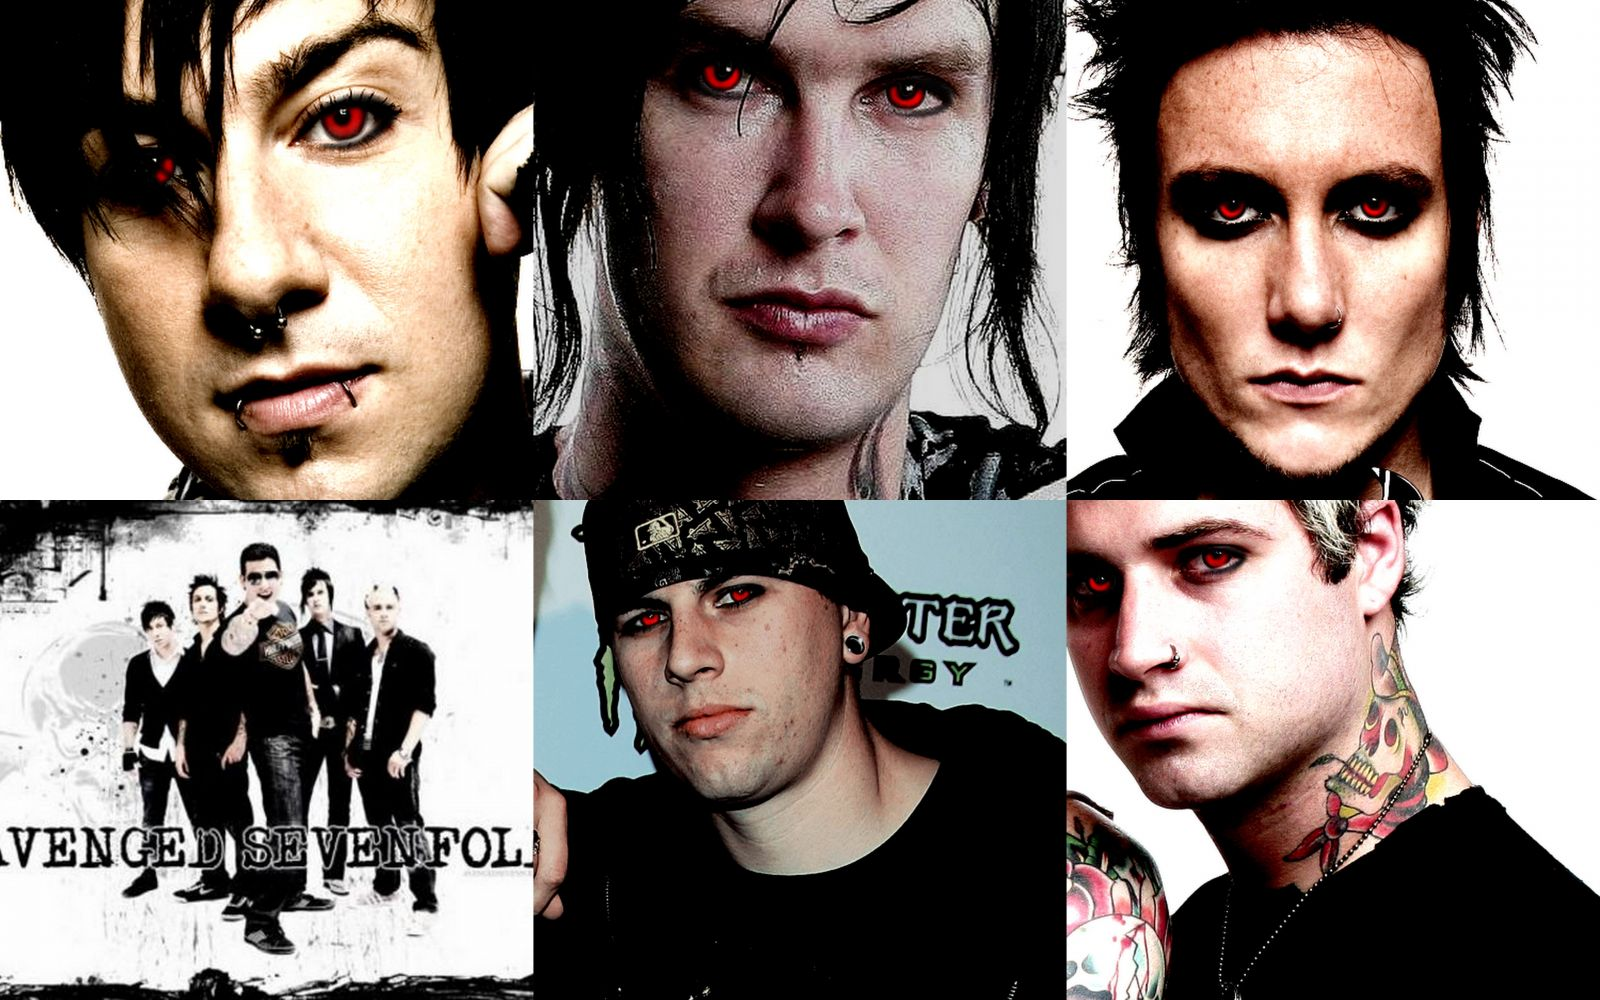 Avenged Sevenfold.jpg